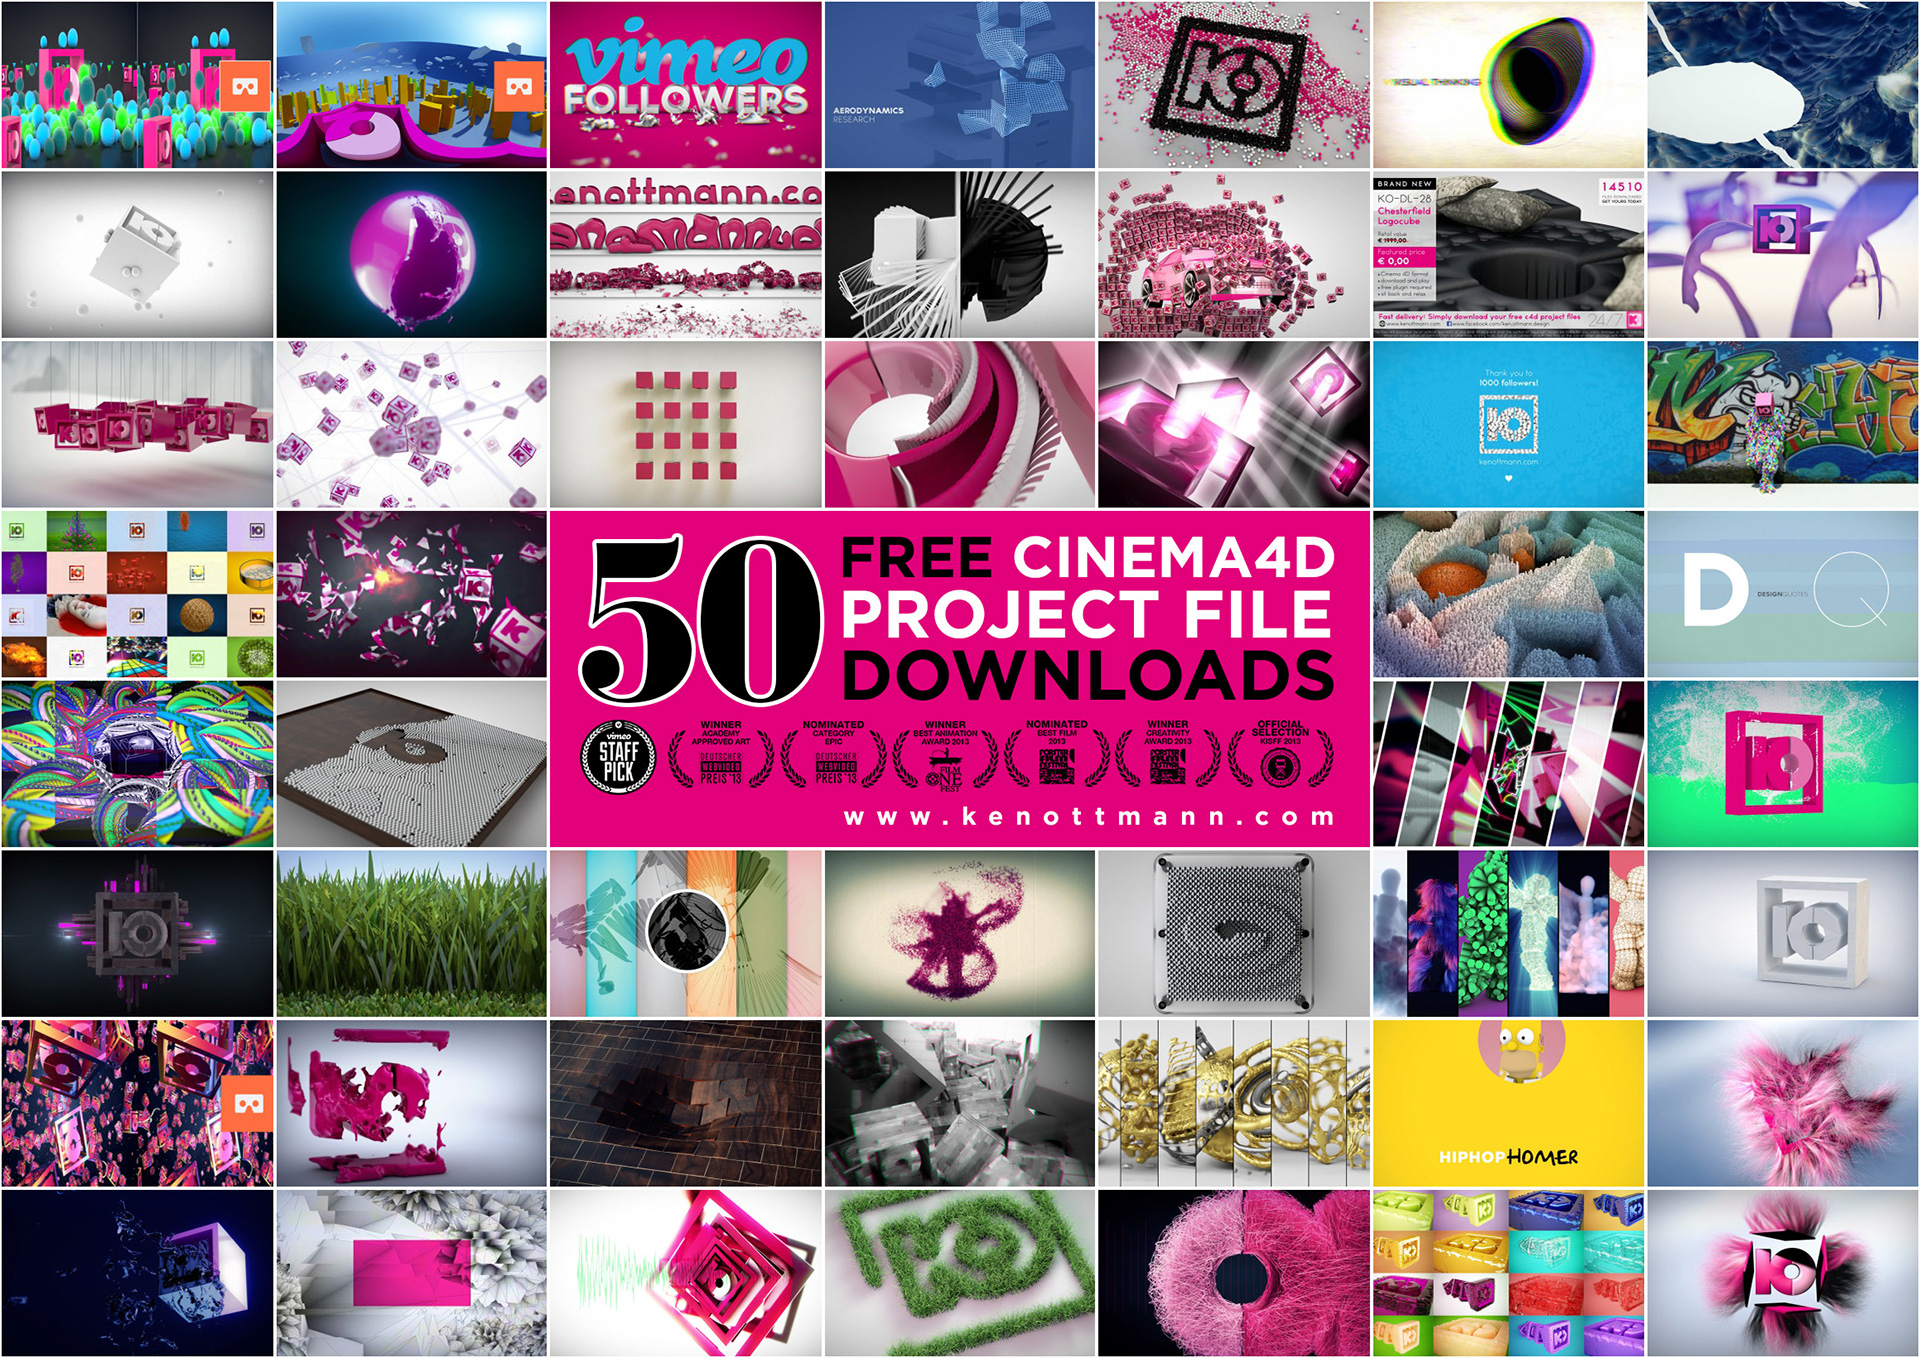 DOWNLOAD FREE CINEMA 4D PROJECTS - UPDATE 2016 on Behance